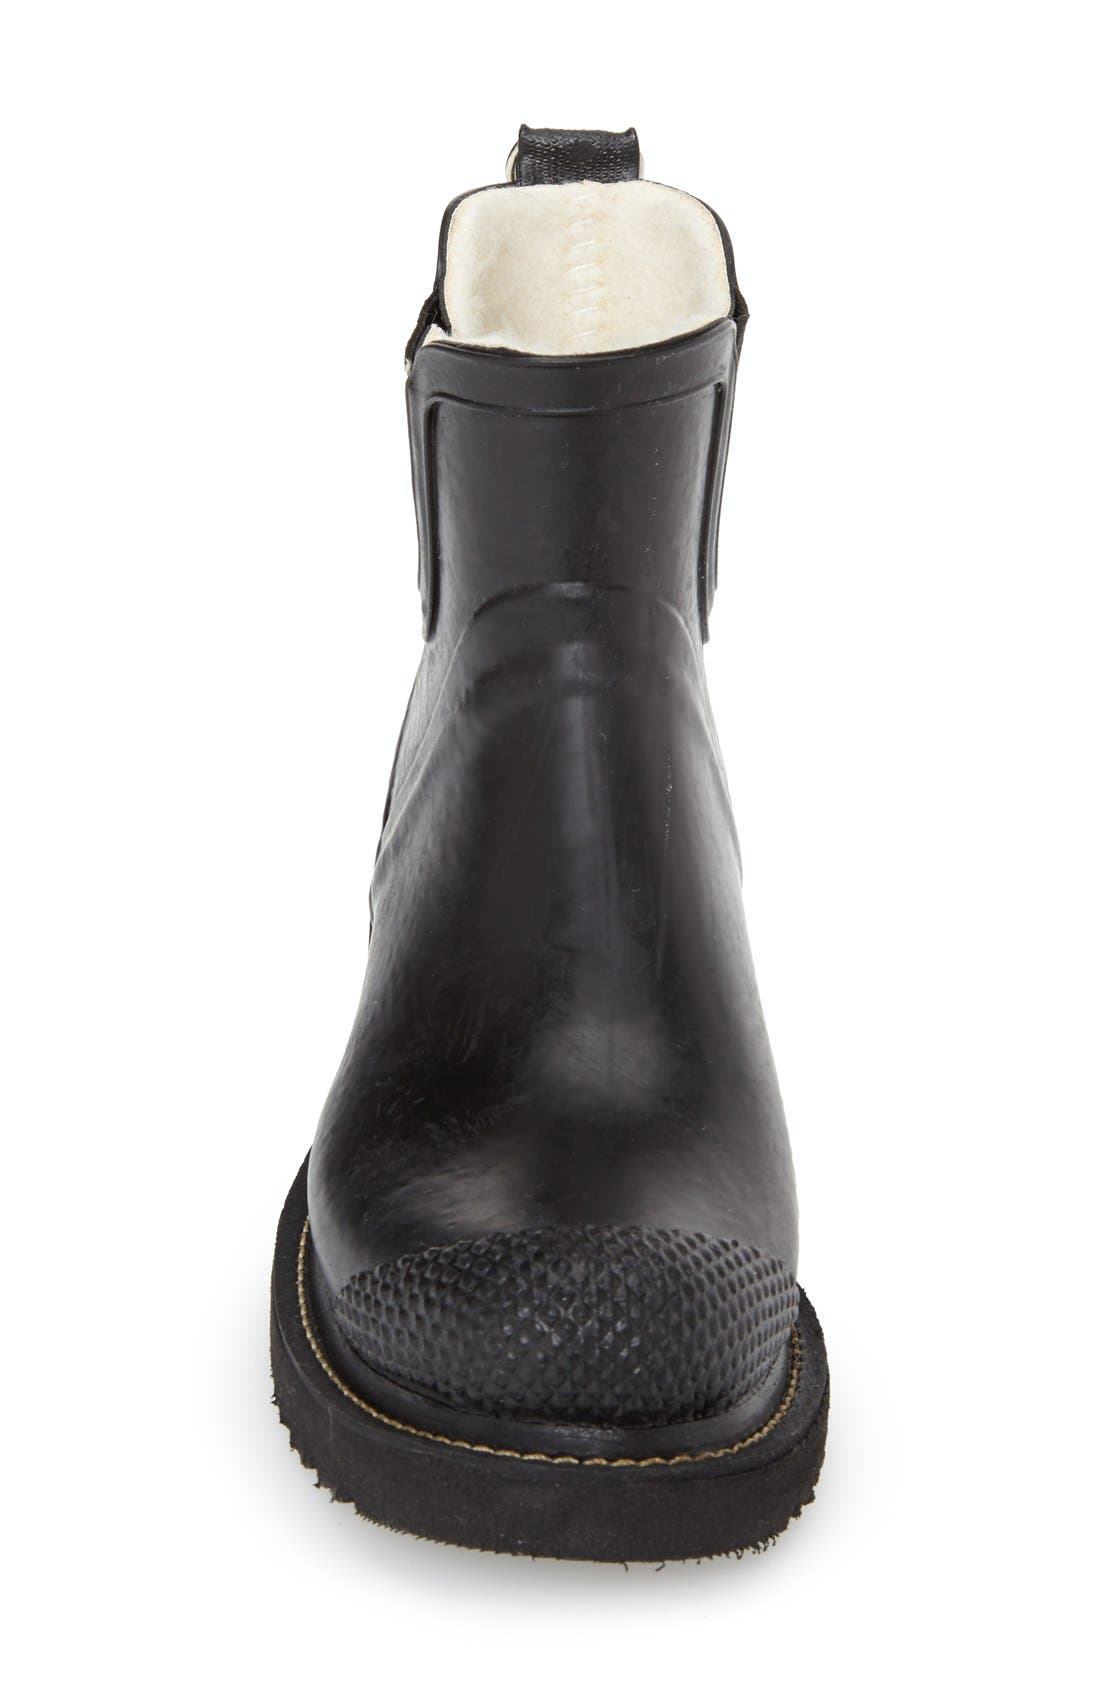 'RUB 47' Short Waterproof Rain Boot,                             Alternate thumbnail 3, color,                             BLACK